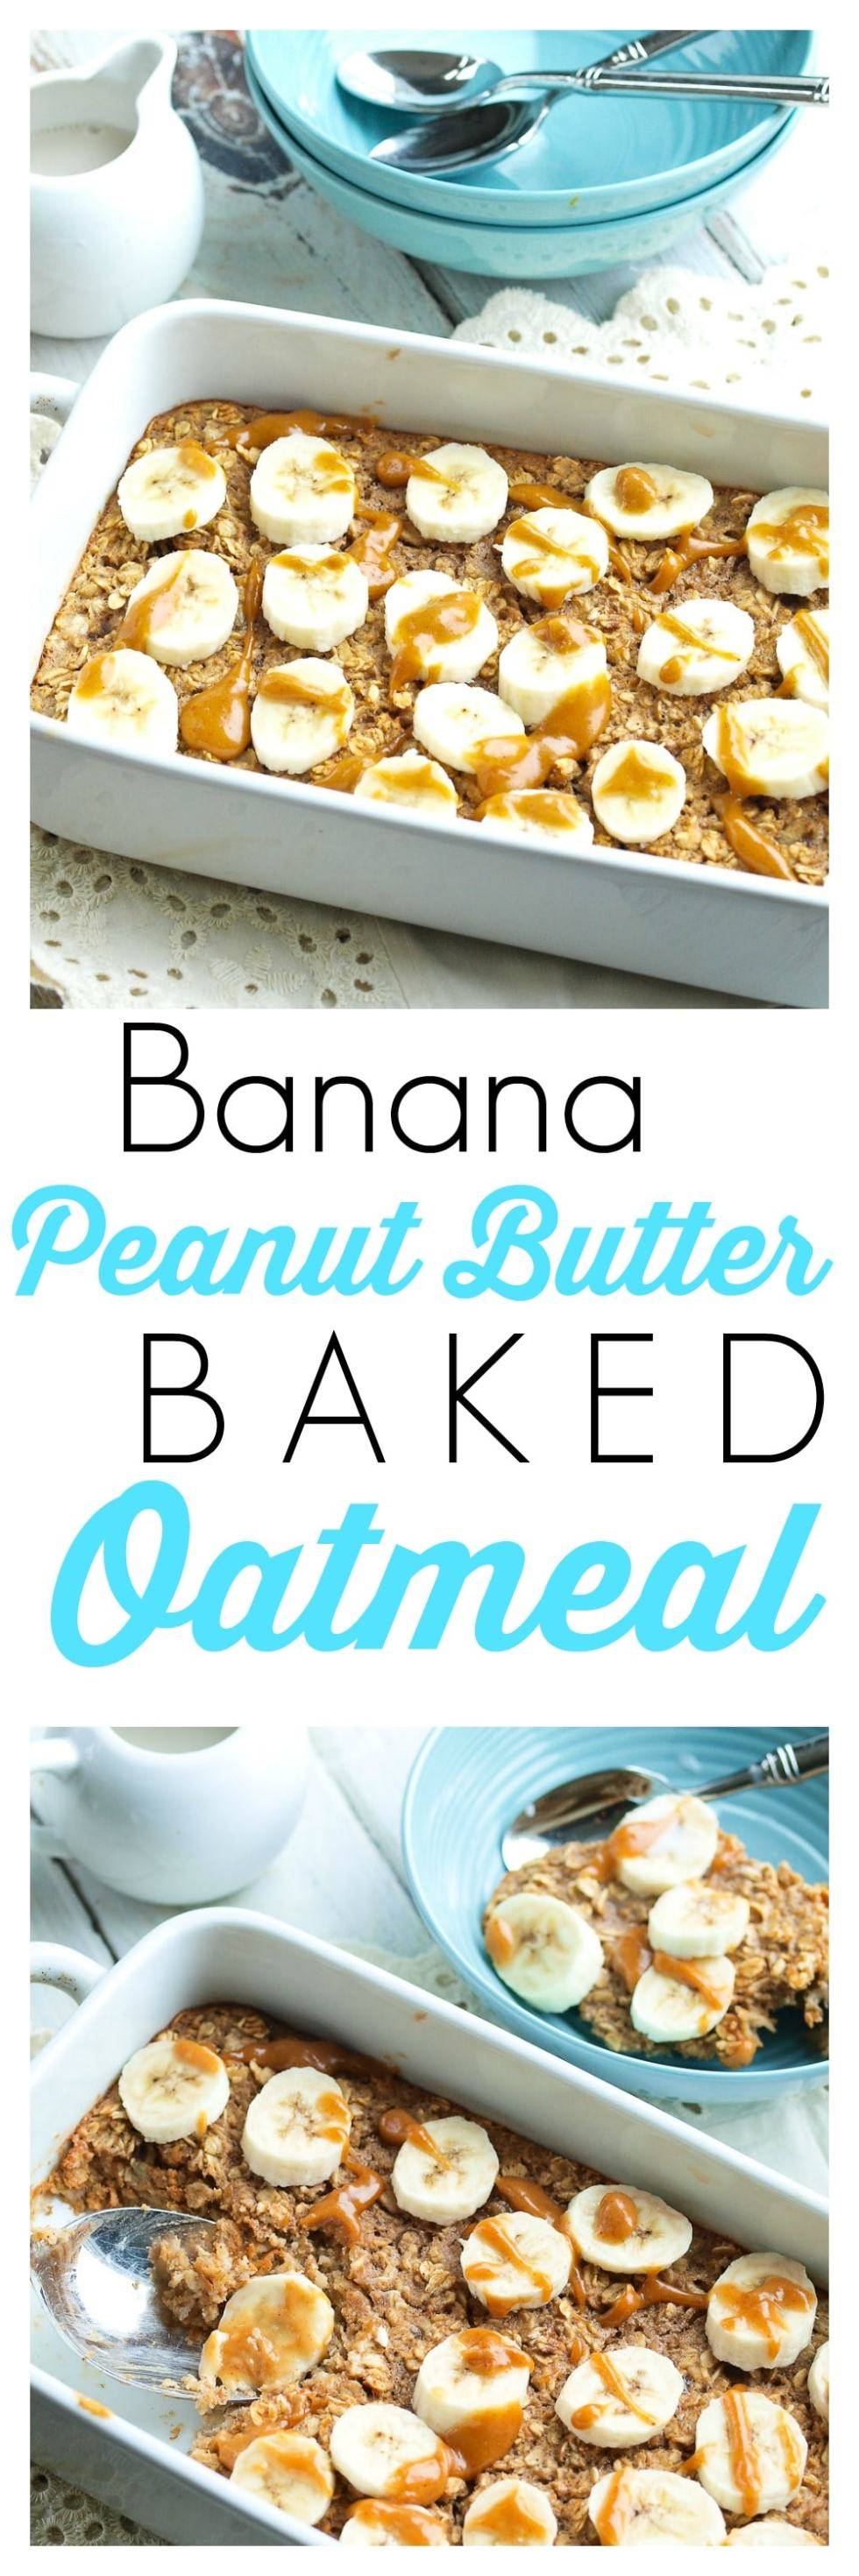 Banana Peanut Butter Baked Oatmeal Recipe. This is a healthy recipe that is perfect for chilly mornings!